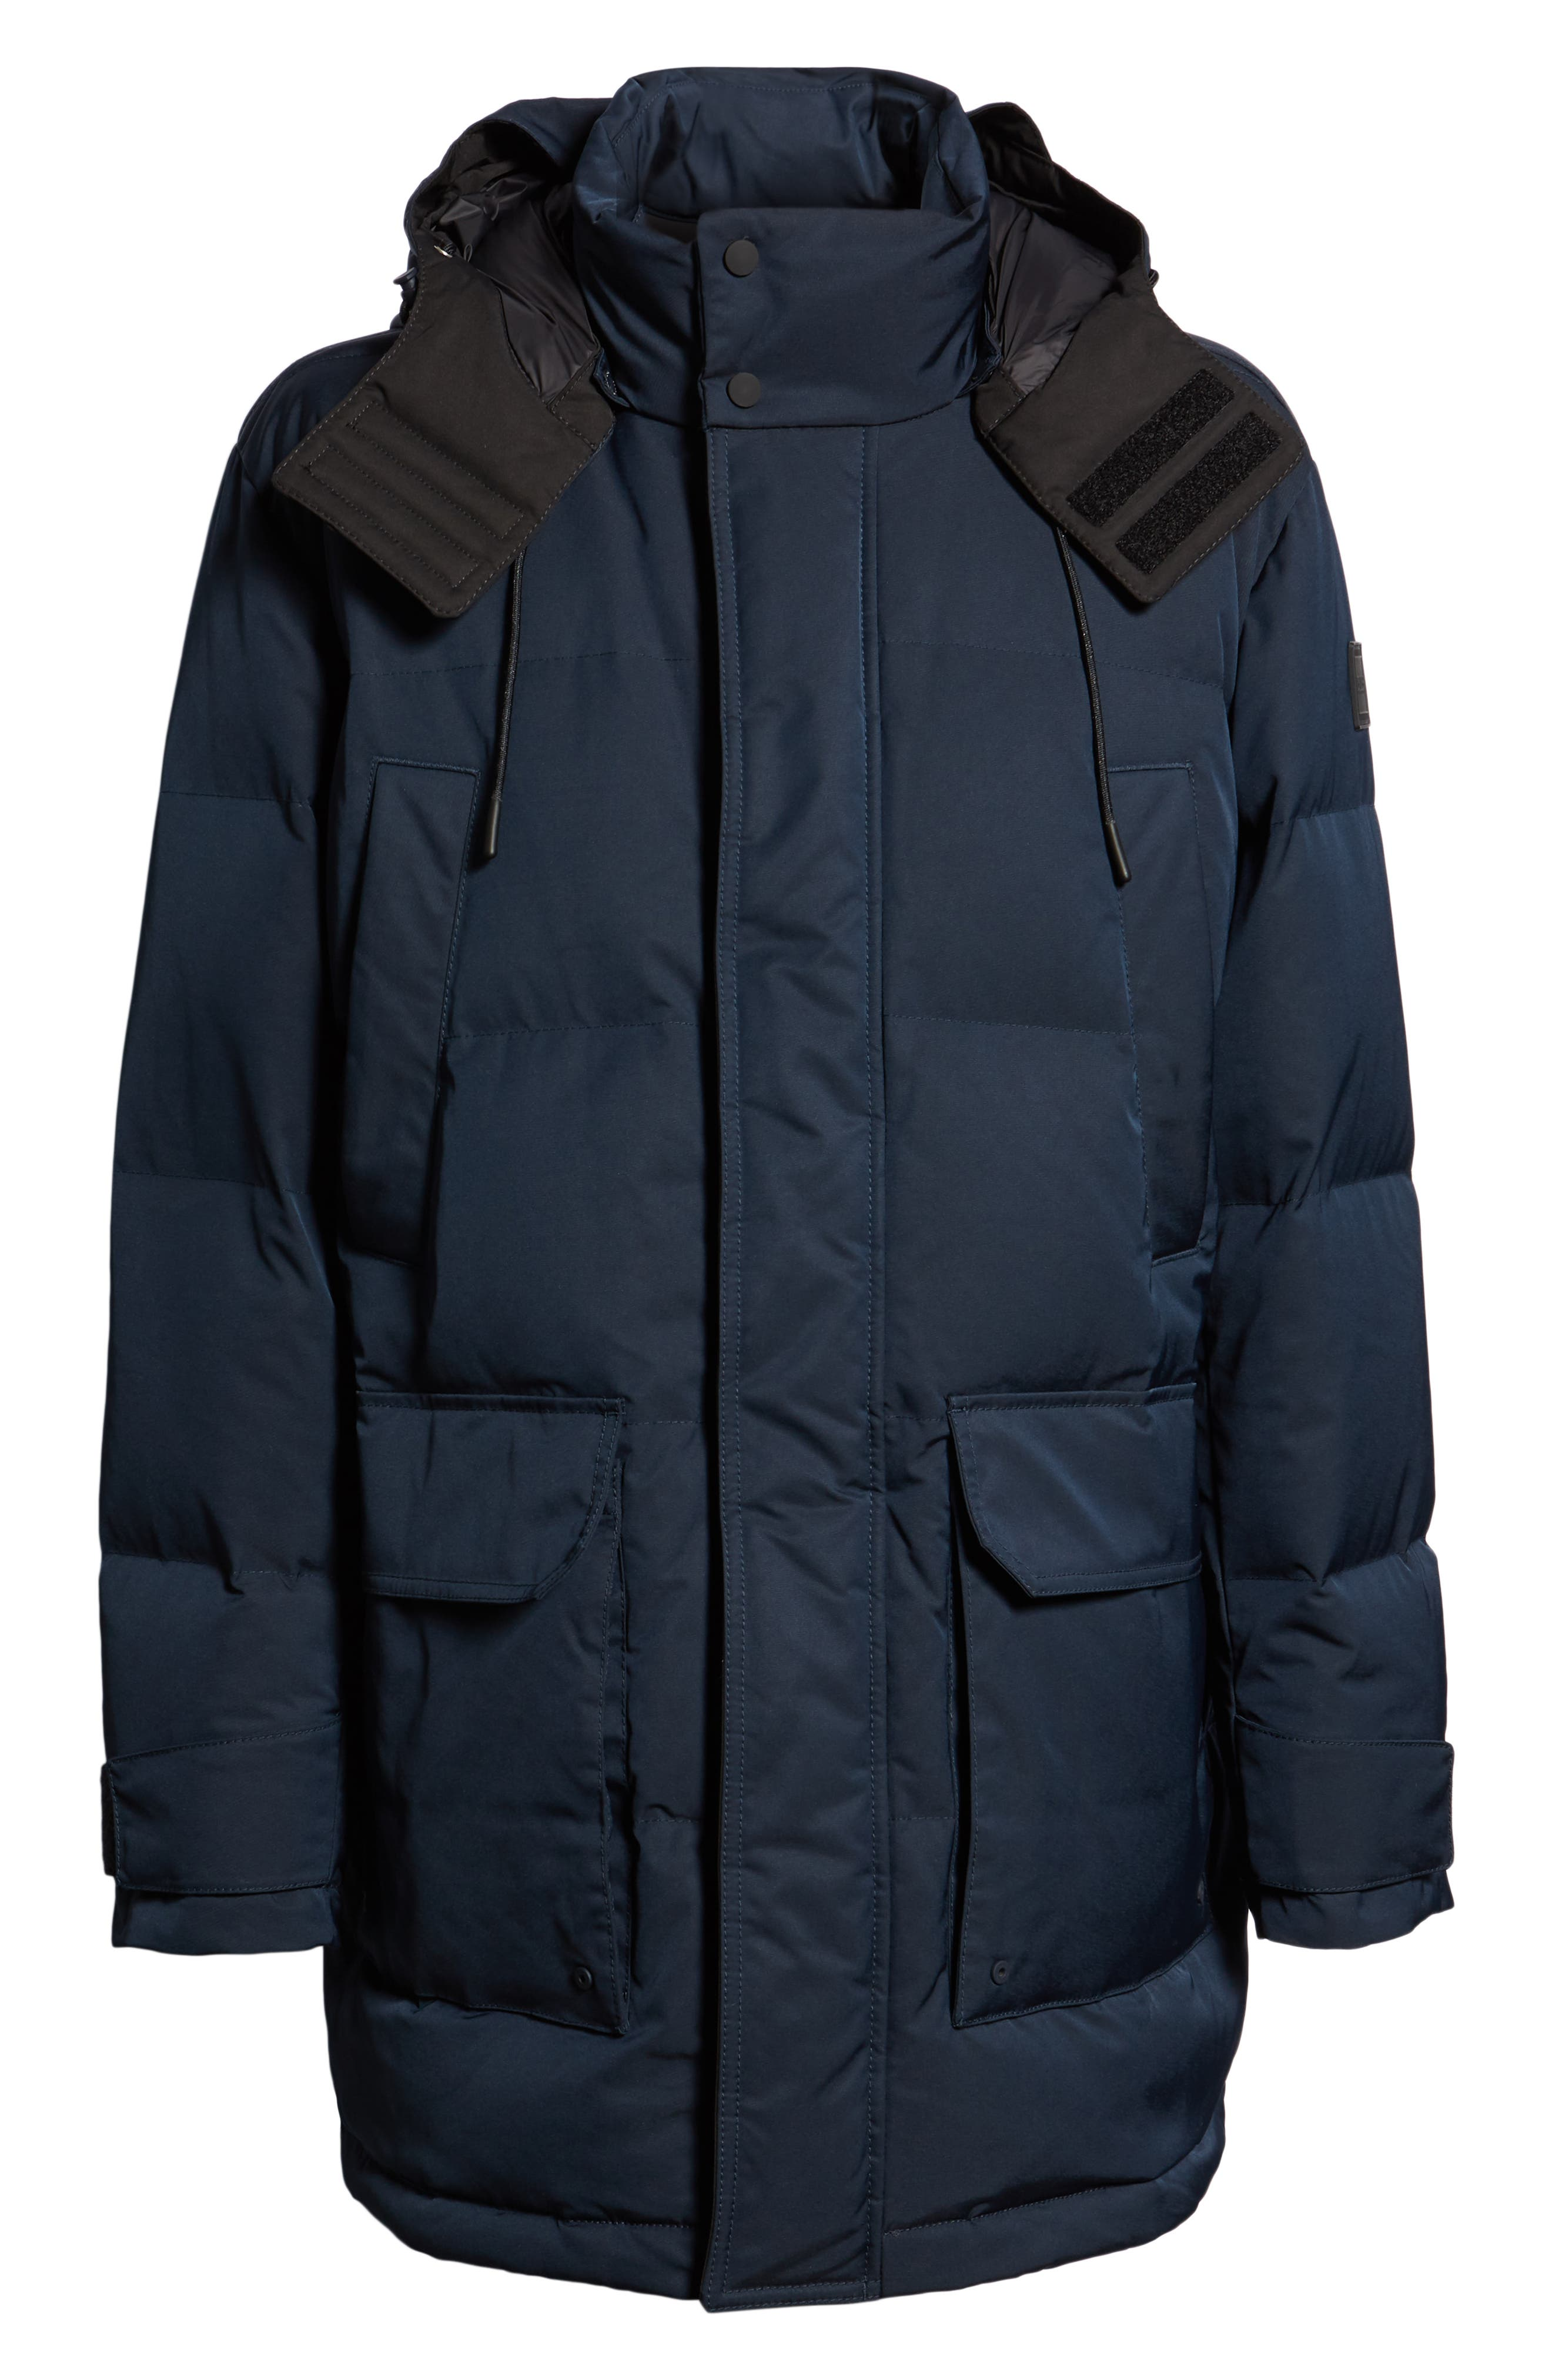 Onek Regular Fit Twill Puffer Jacket,                             Alternate thumbnail 6, color,                             BLUE